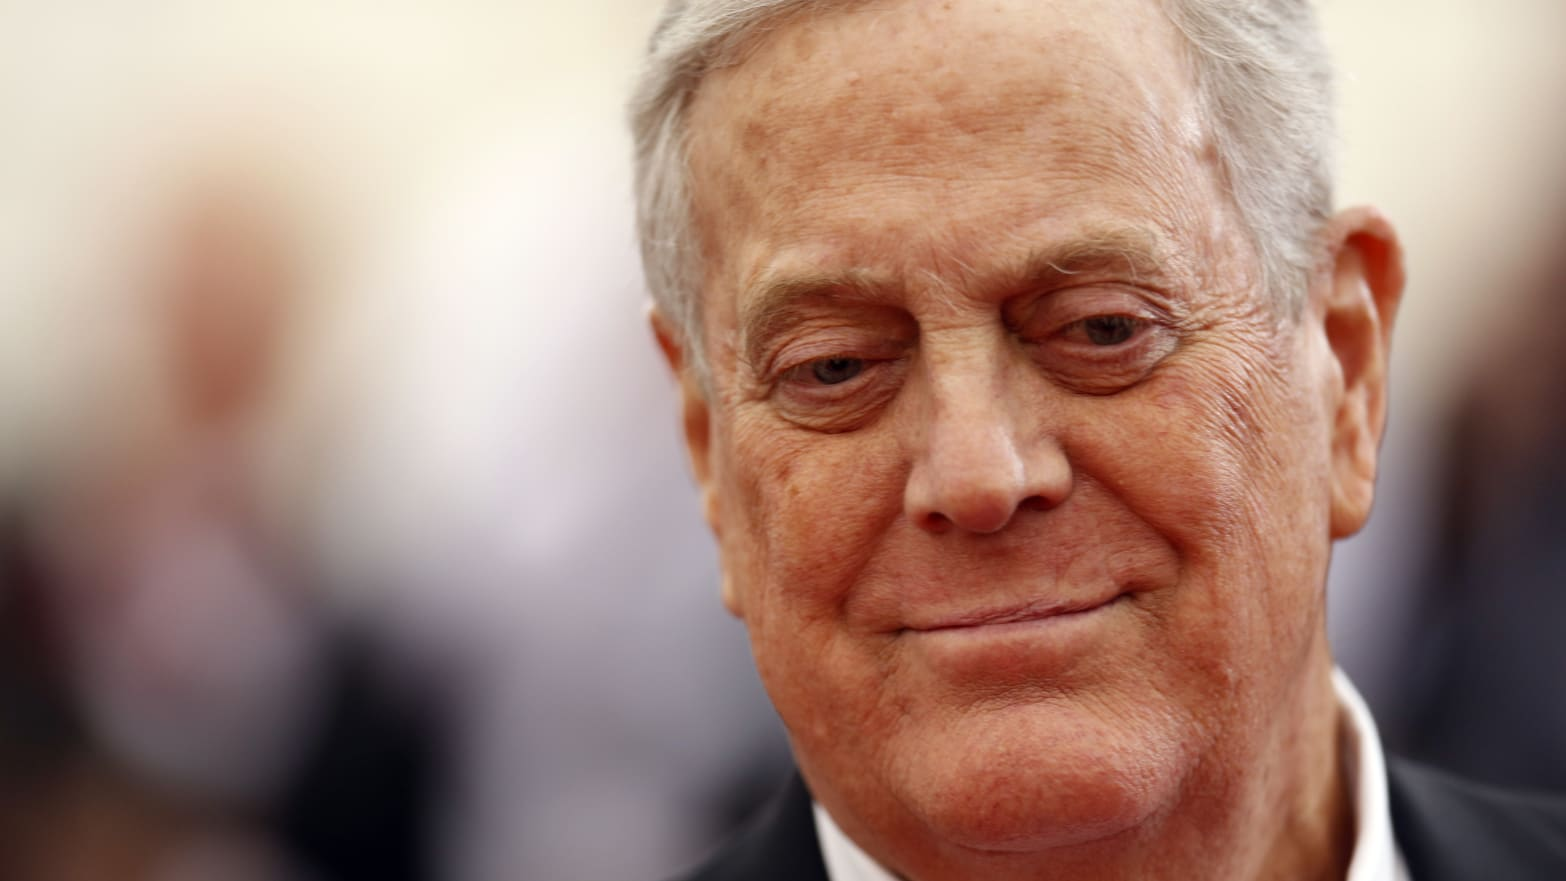 Billionaire David Koch, Who Reshaped American Politics and Paved the Way for Trump, Has Died